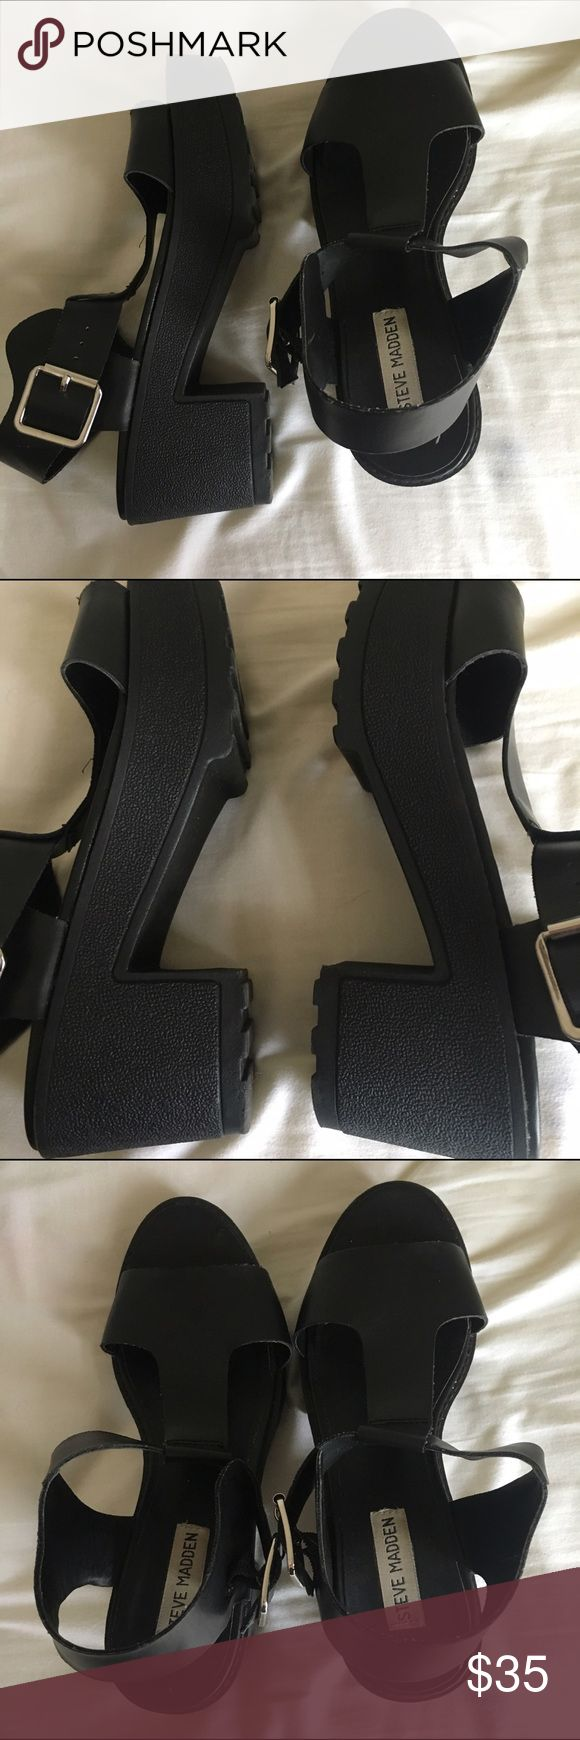 steve madden platform sandals beautiful and classy platform leather sandals by steve madden! really comfortable, never got blisters wearing them. all man made materials. size 8. platform is about one inch and the heel is about 3 Steve Madden Shoes Sandals